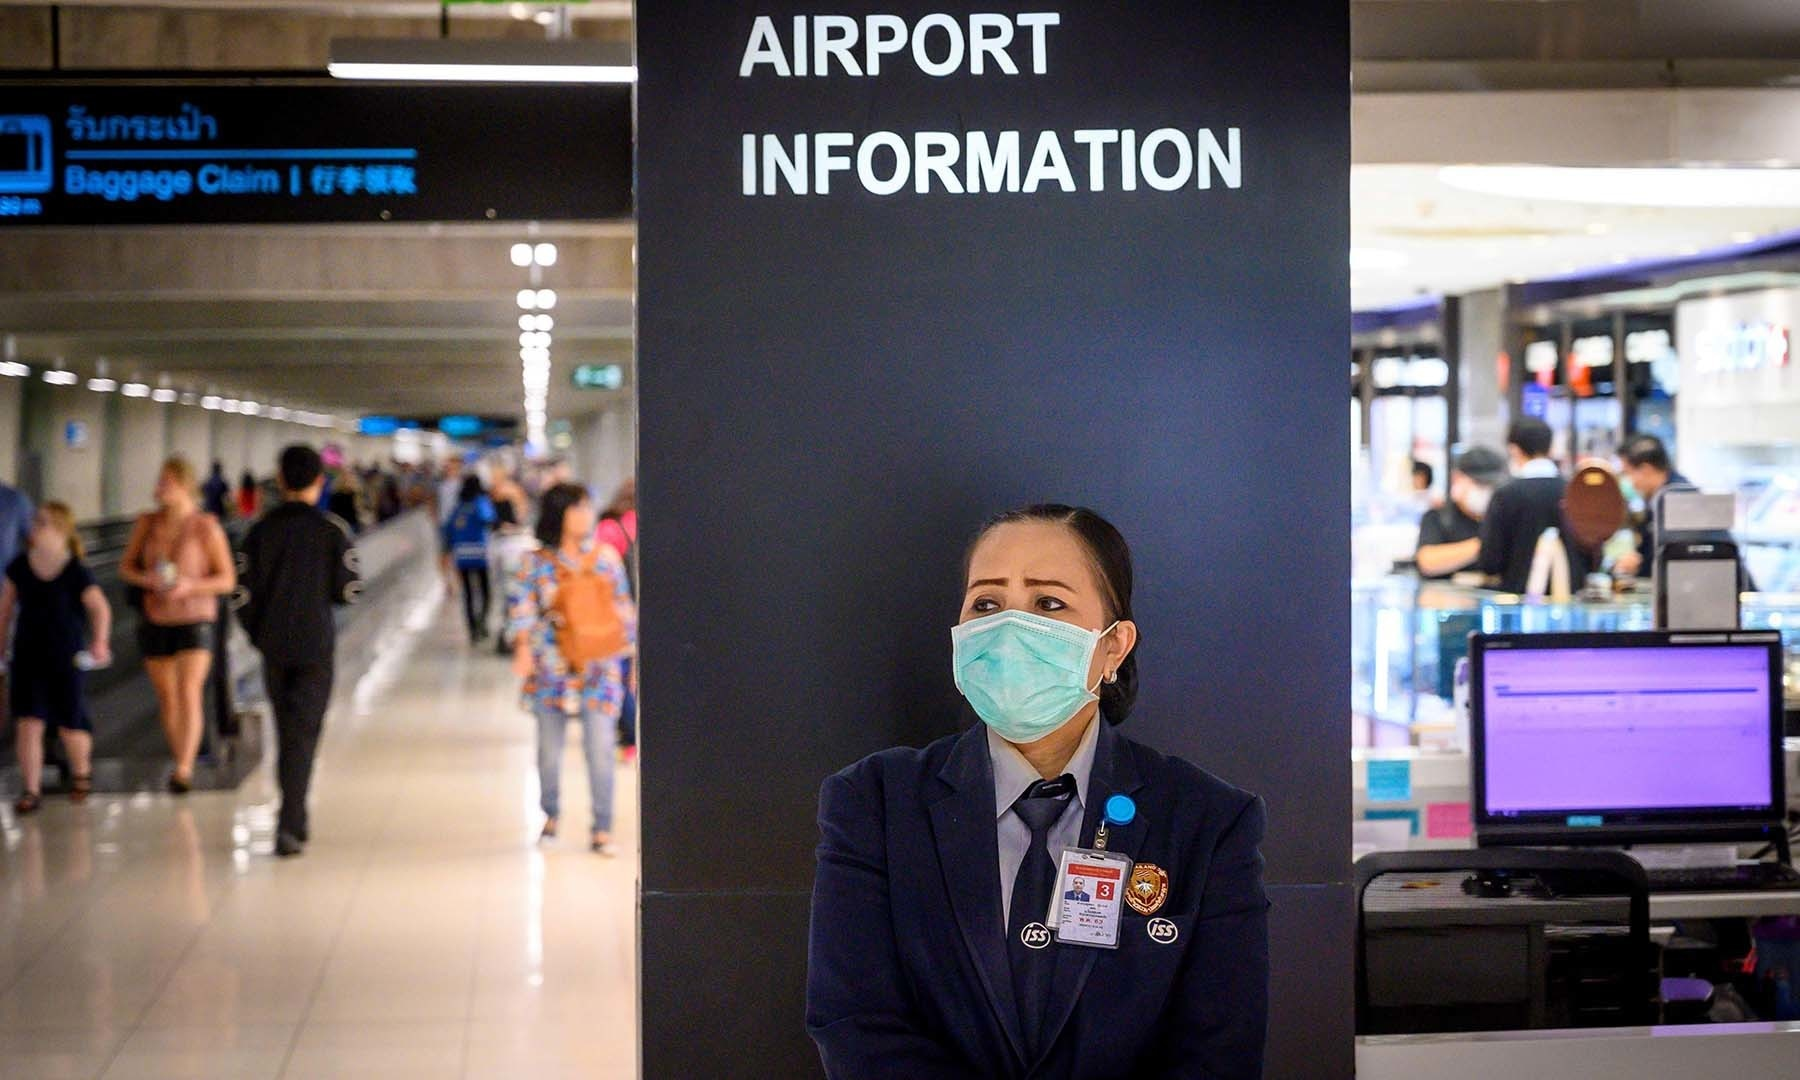 An airport staff member wearing a protective facemask stands at an information desk at Suvarnabhumi International Airport in Bangkok on February 9, 2020. - The new coronavirus that emerged in central China at the end of last year has killed more than 800 people and spread around the world. (Photo by Mladen ANTONOV / AFP)